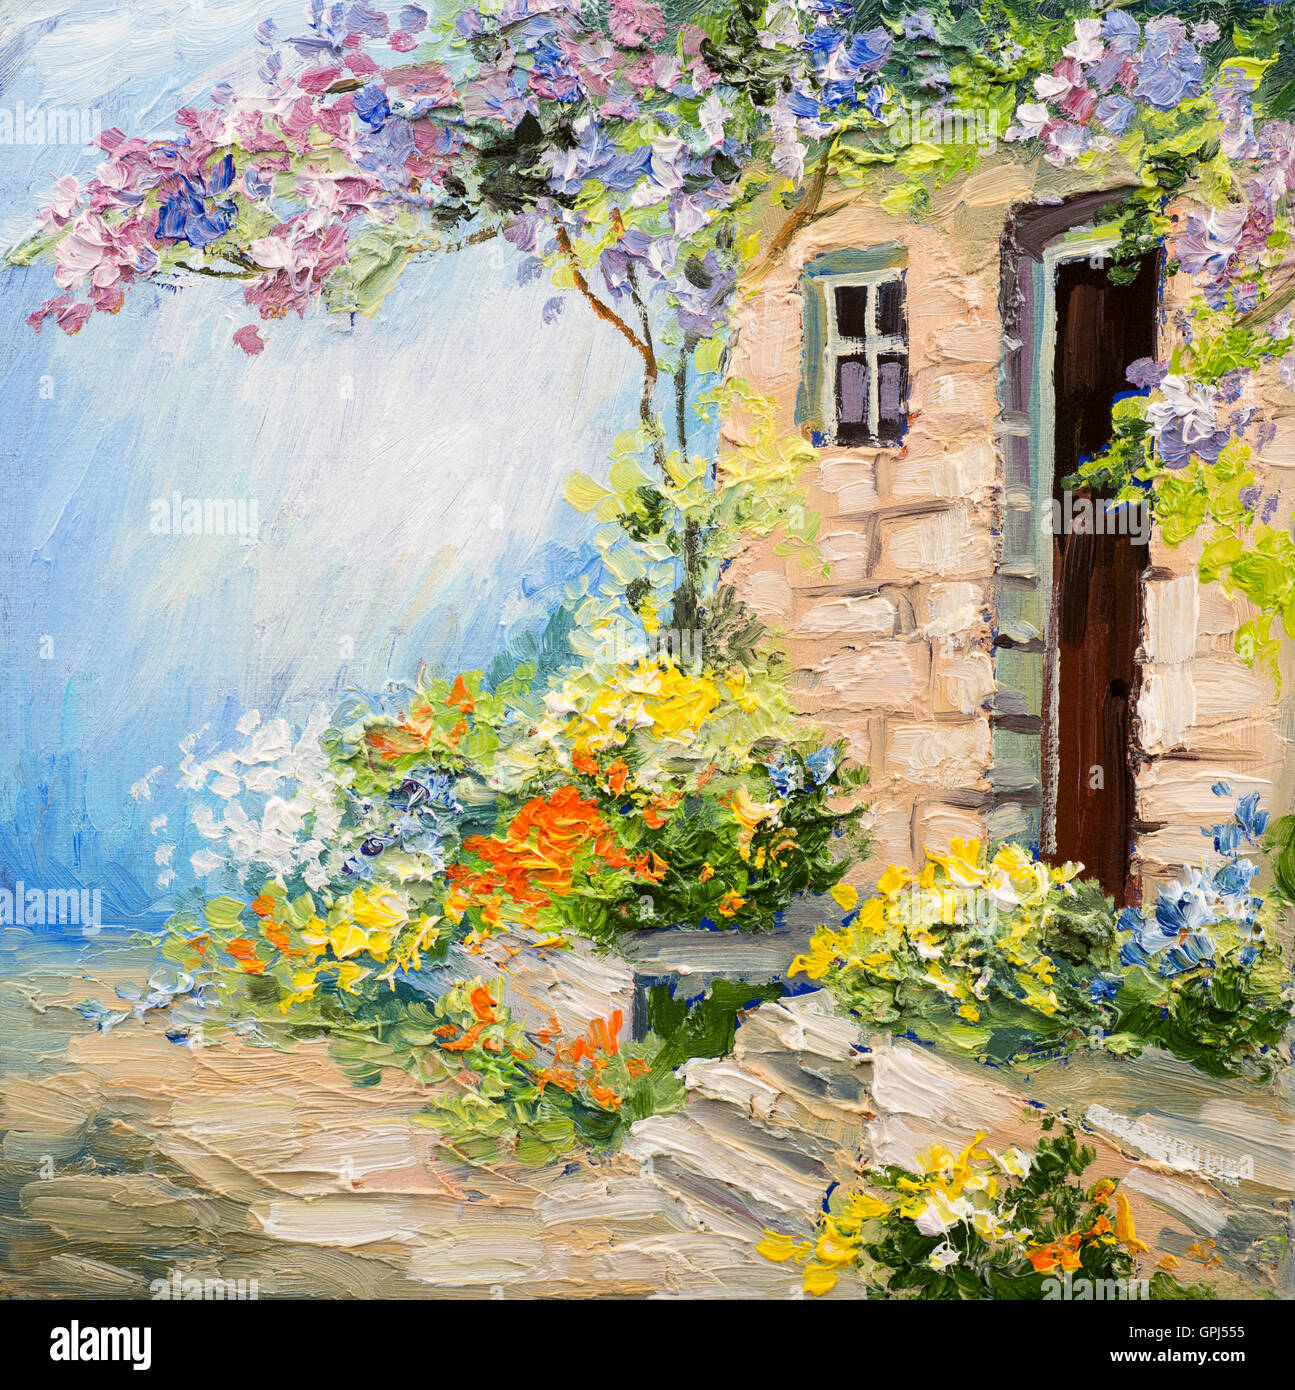 Oil Painting Landscape Garden Near The House Colorful Flowers Stock Photo Royalty Free Image